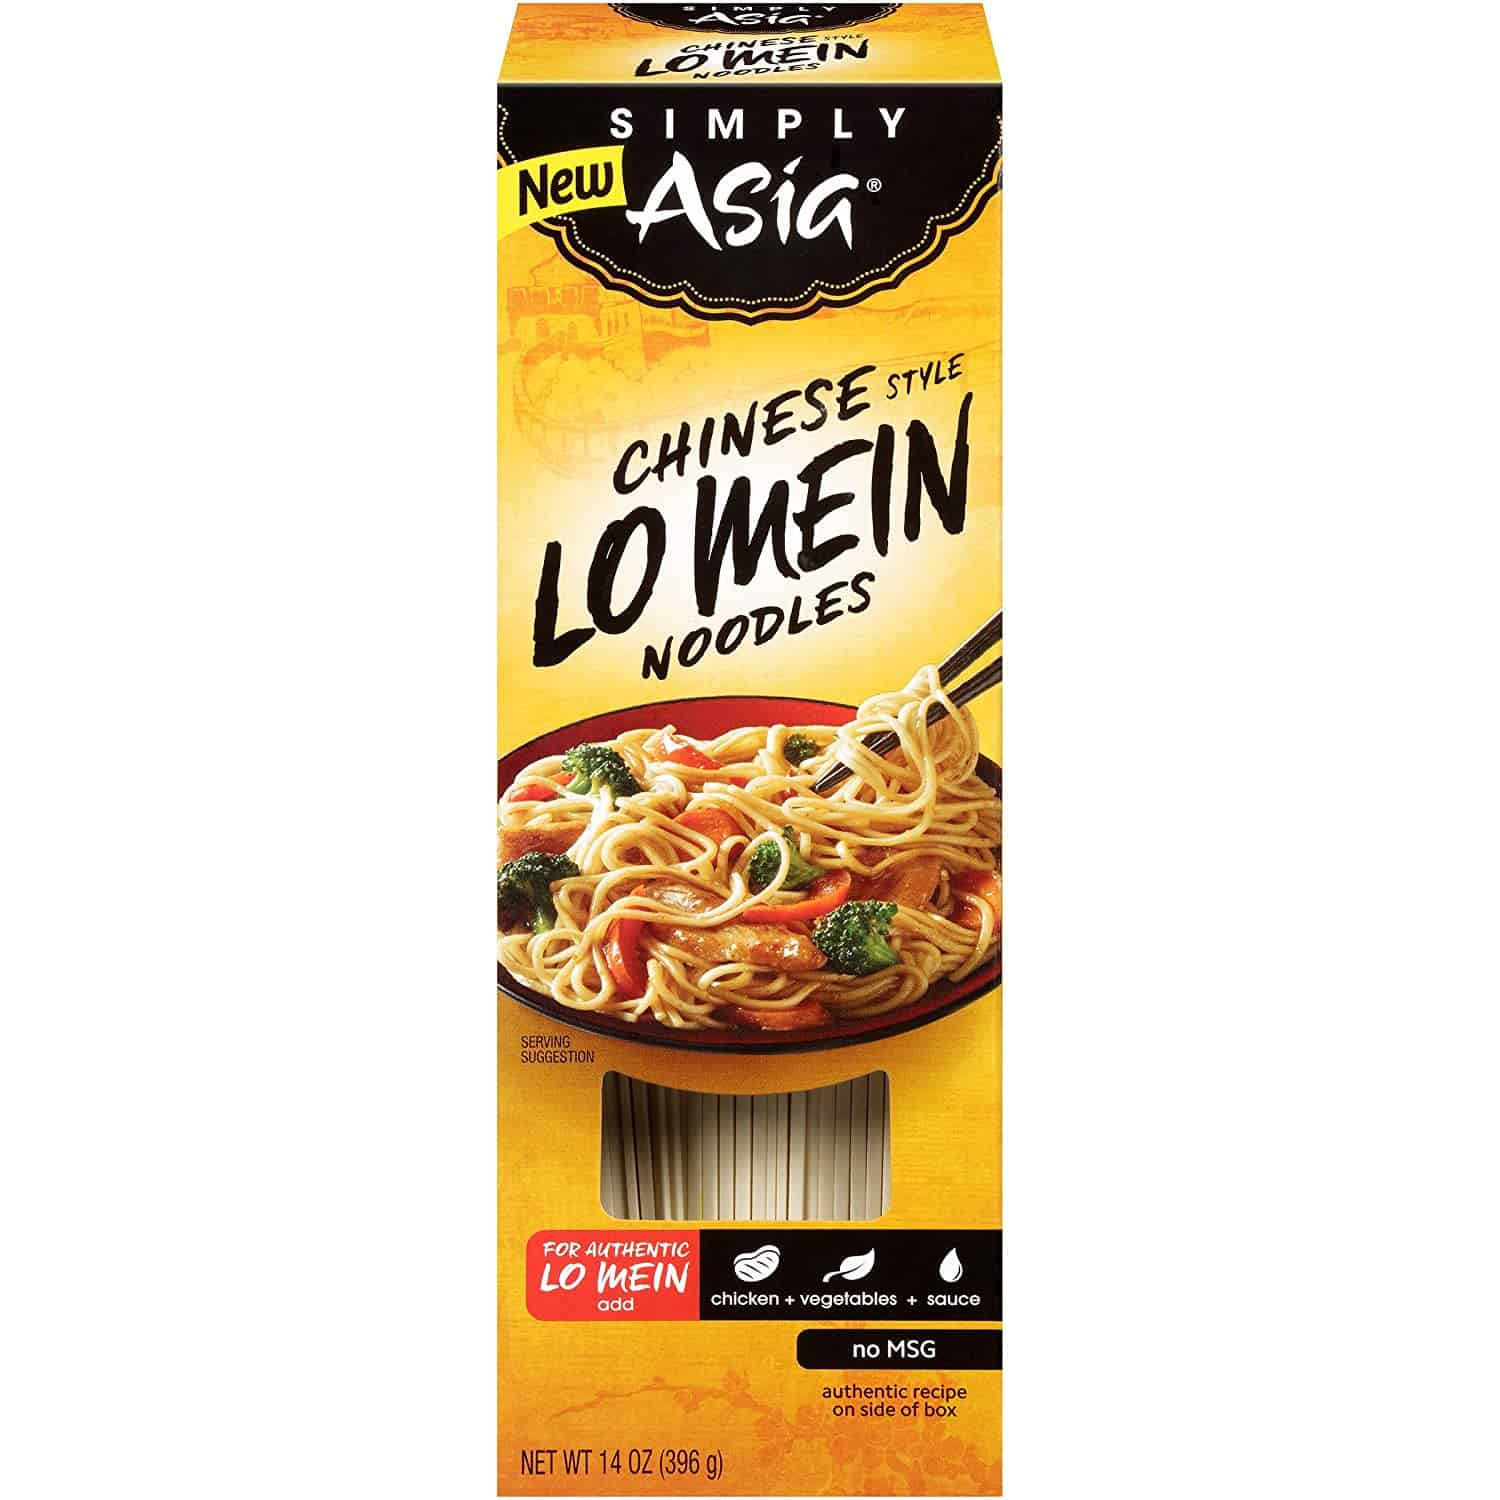 best substitute for ramen noodles Simply Asia Chinese Style Lo Mein Noodles